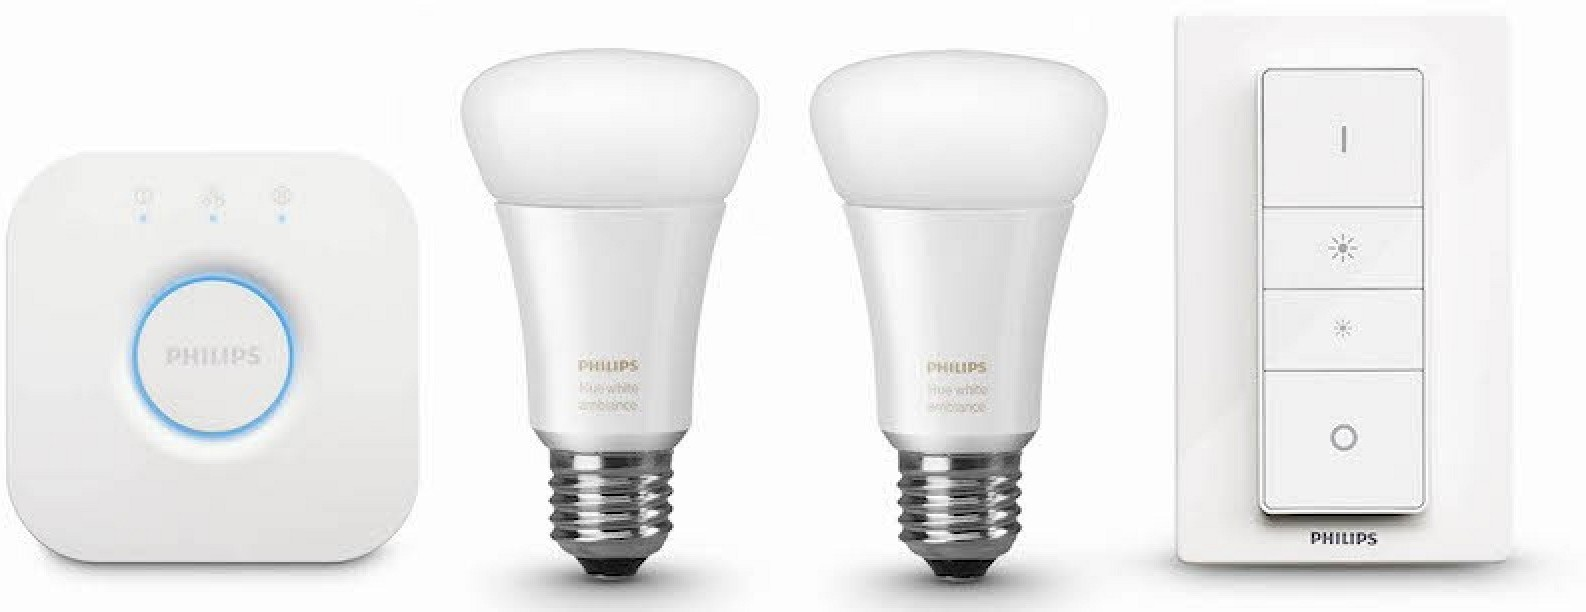 philips hue white ambiance starter pack e27 2 lampen 1 dimmer met bridge 2 0 prijzen. Black Bedroom Furniture Sets. Home Design Ideas